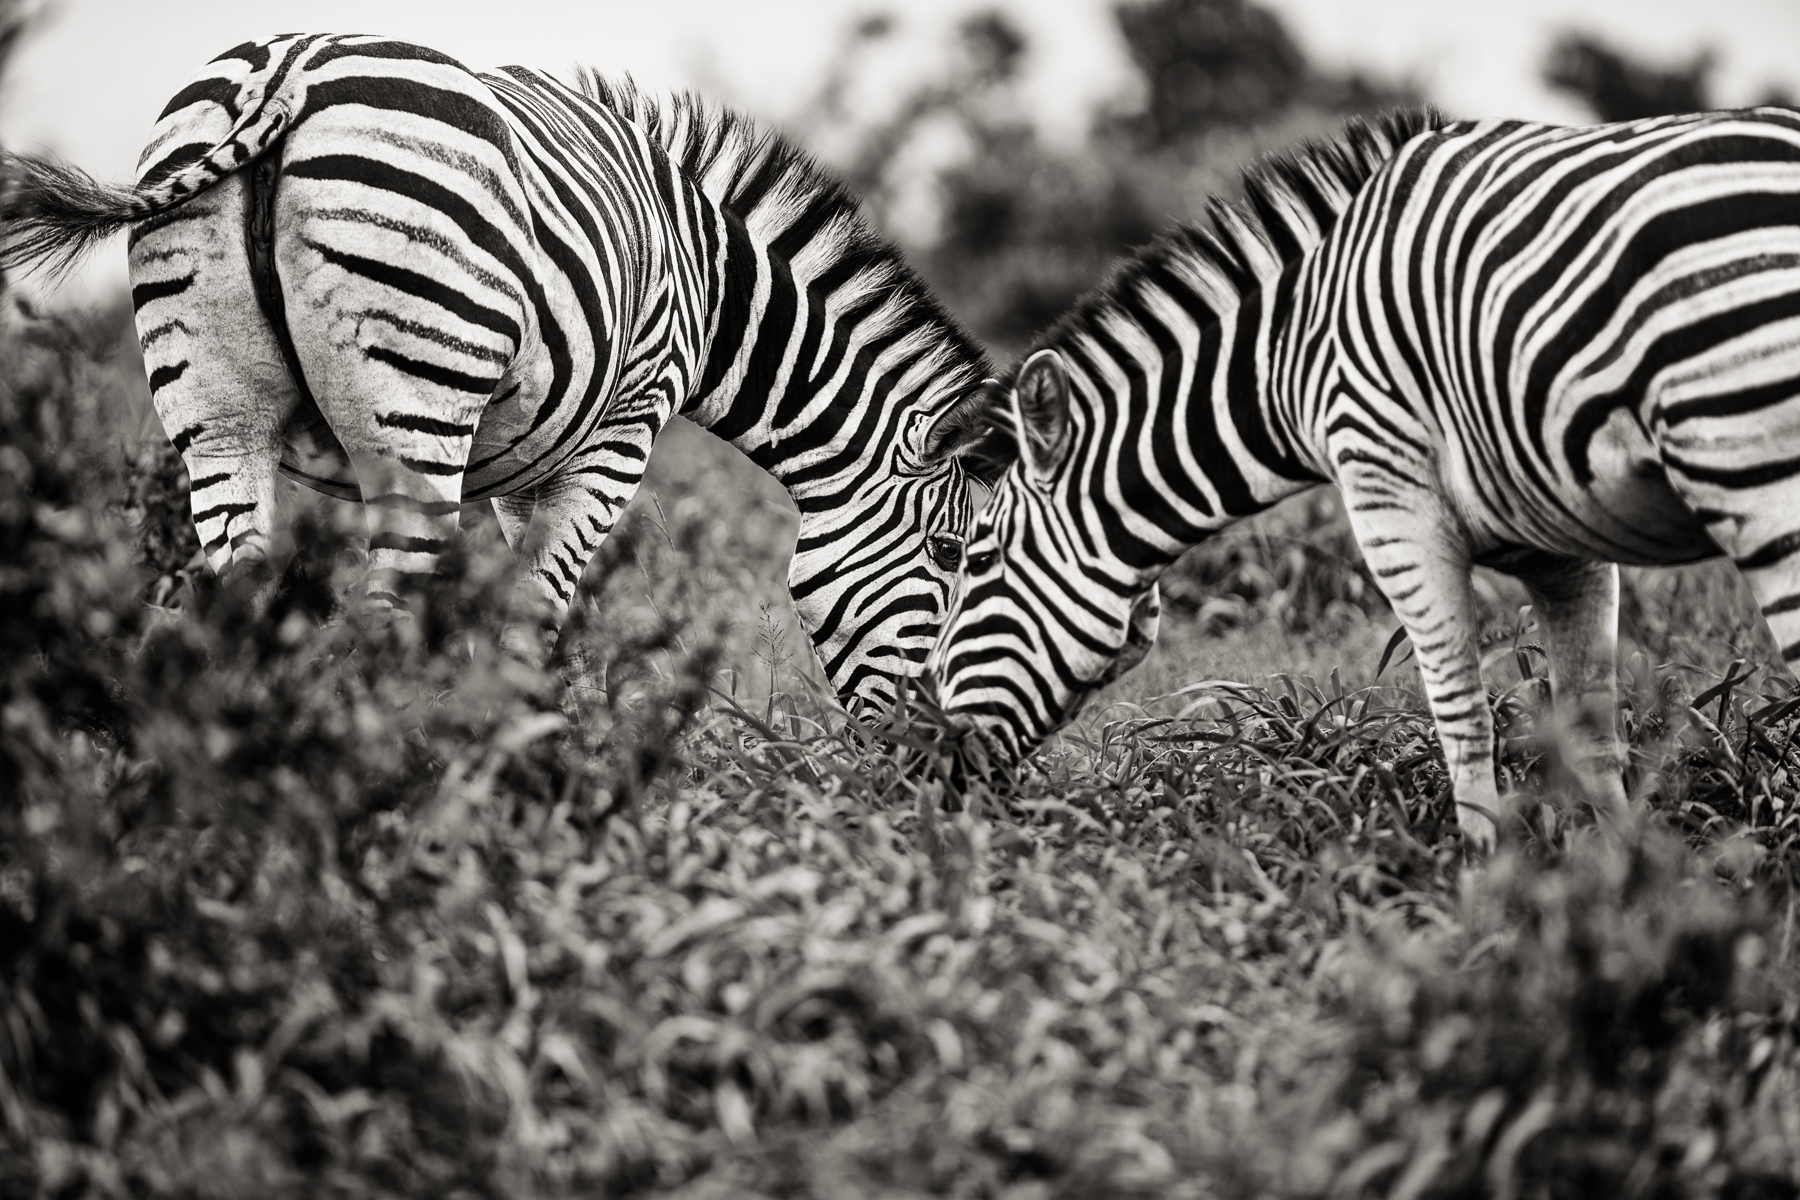 2002_17_JH_Port_Zebras_161117_SAFARI_7659_w4_RGB_